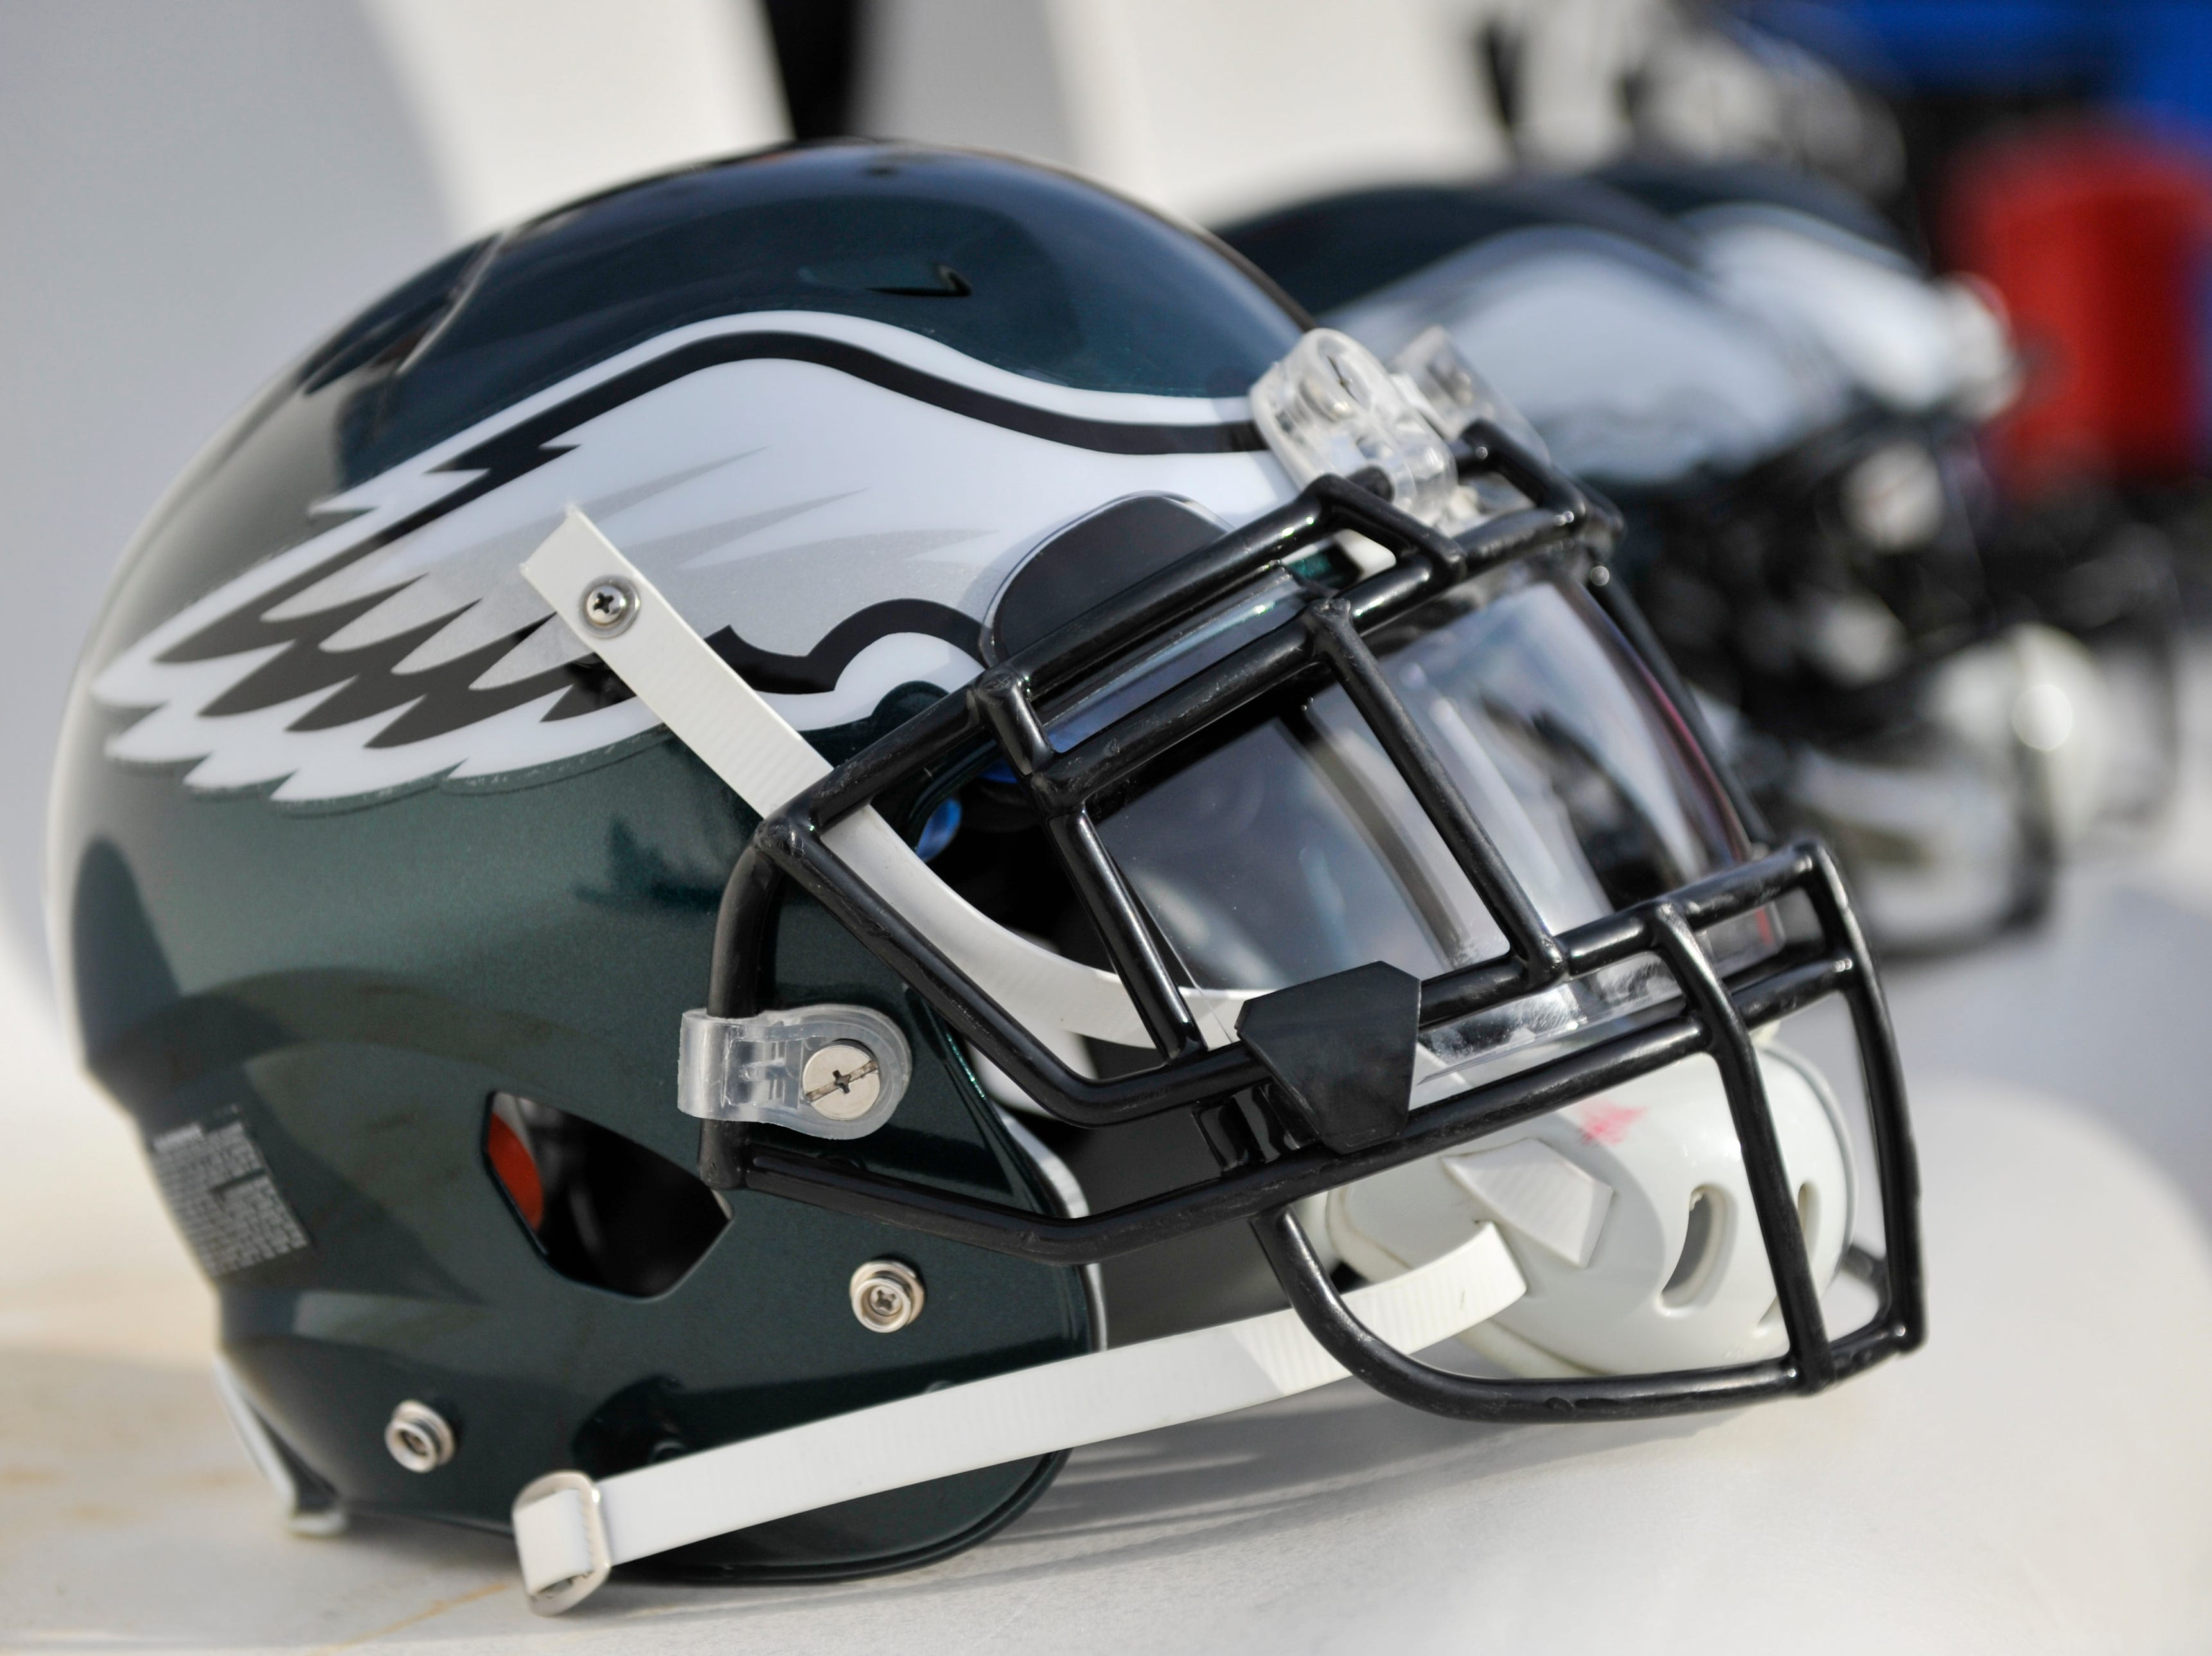 Philadelphia Eagles helmets sit on the bench before the NFL football game between the Washington Redskins and the Philadelphia Eagles, Sunday, Dec. 30, 2018 in Landover, Md. (AP Photo/Mark Tenally)